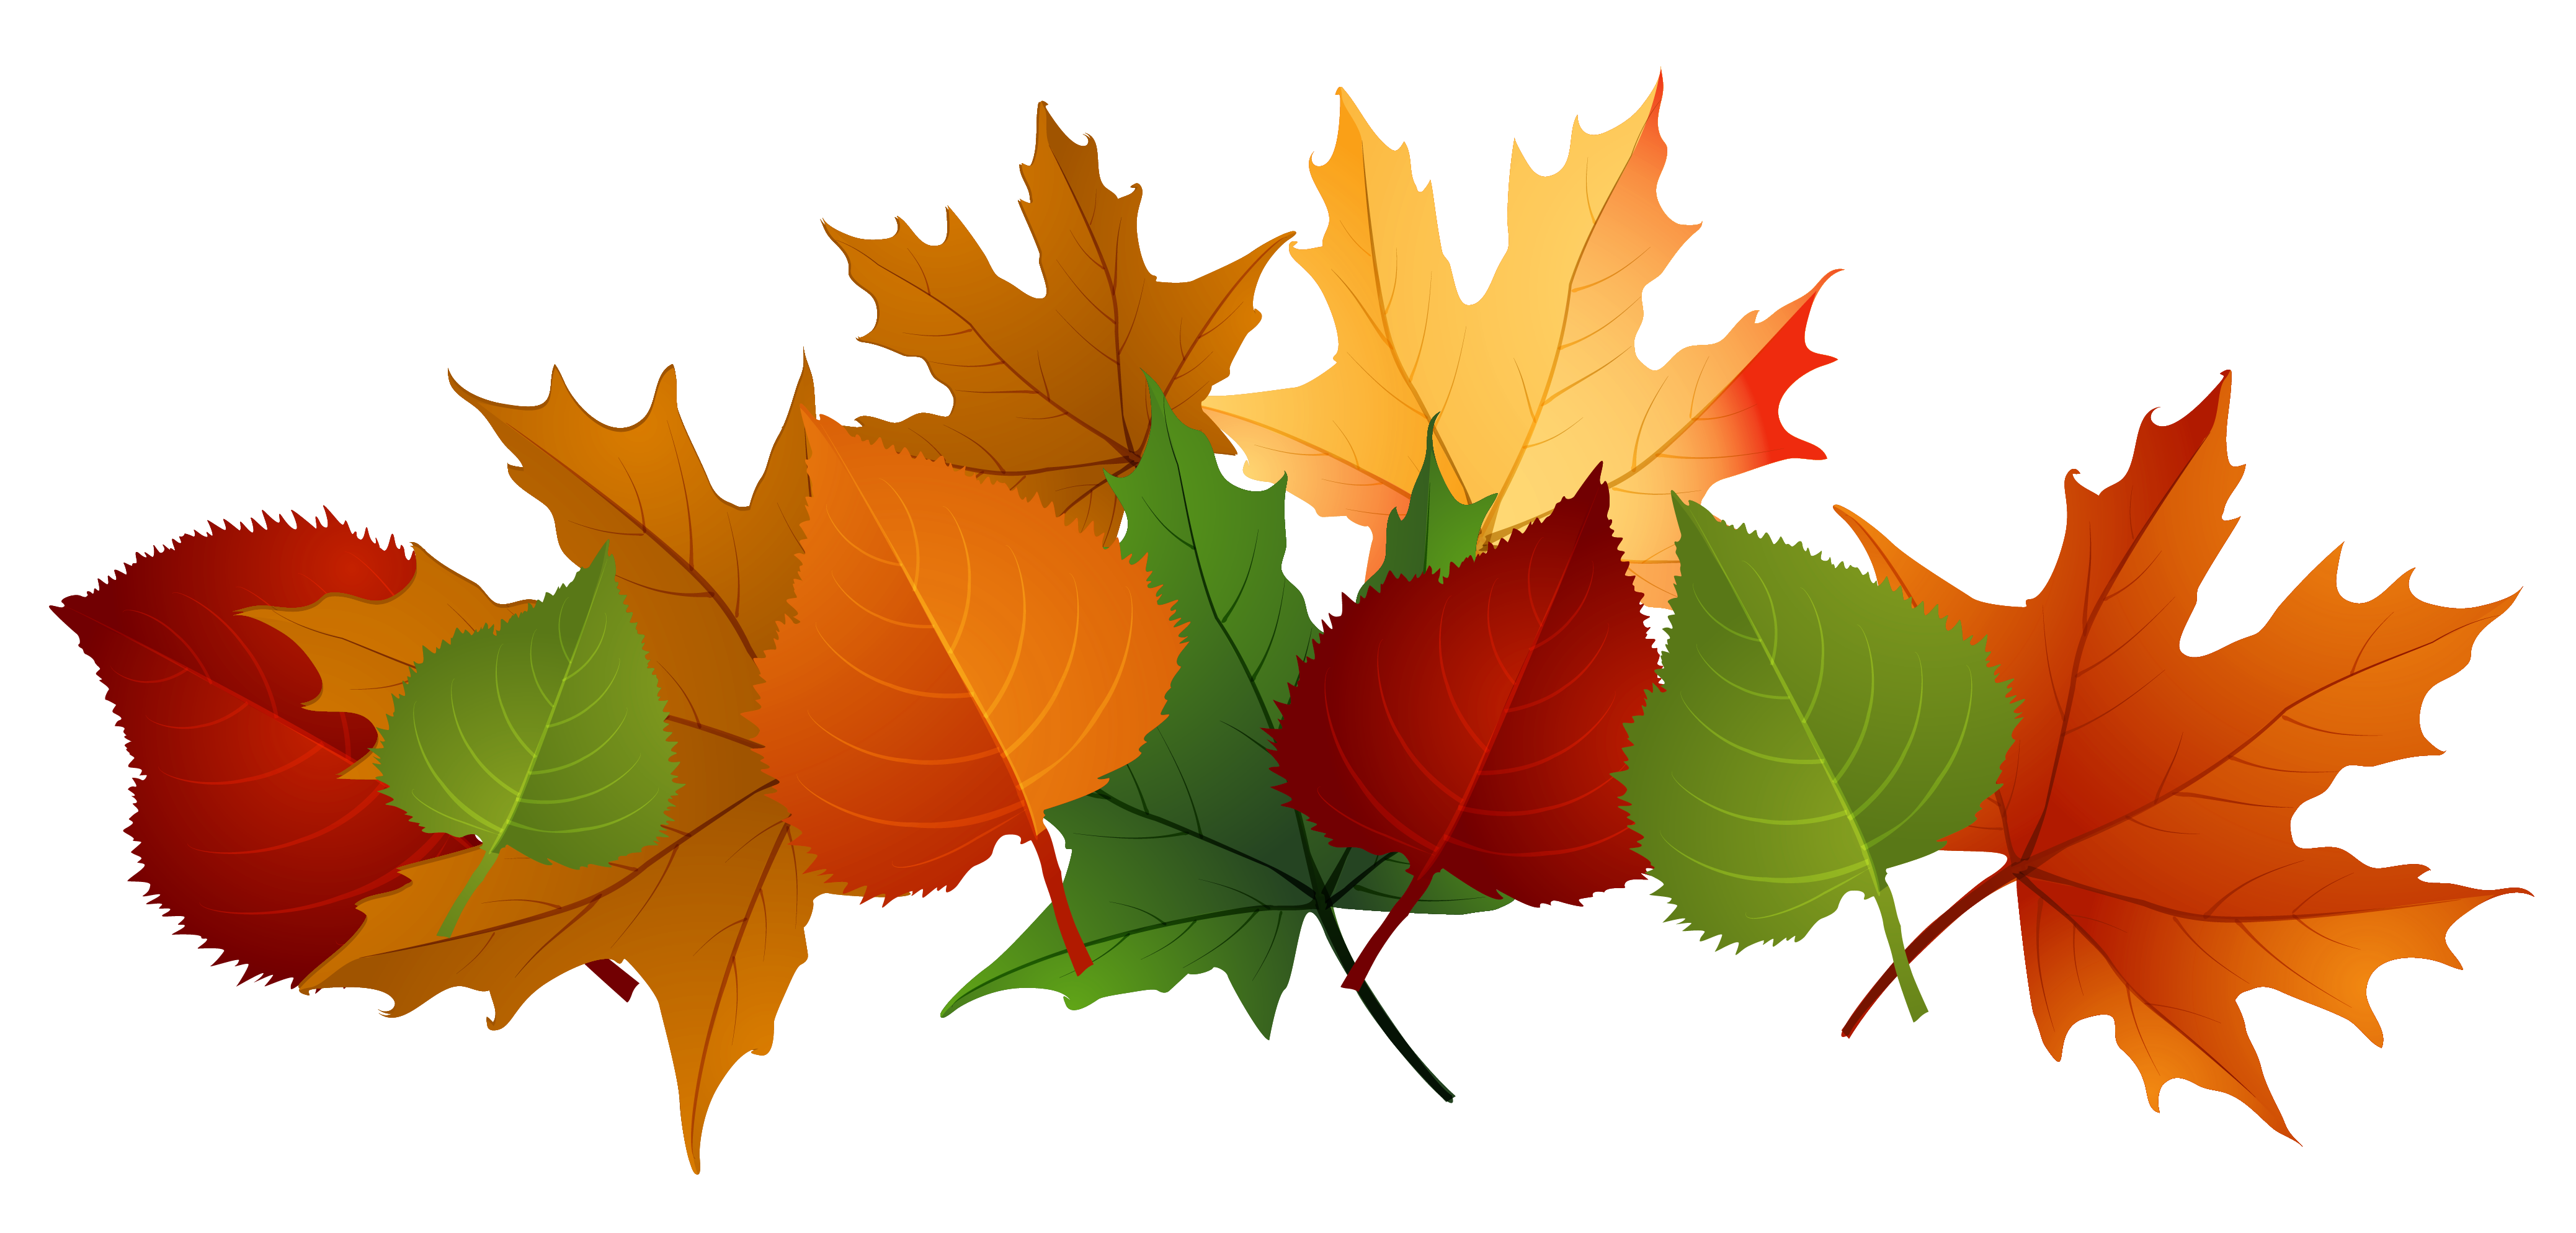 Falling autumn leaves clipart clipart freeuse library Fall leaves fall clip art autumn clipart 5 - ClipartBarn clipart freeuse library